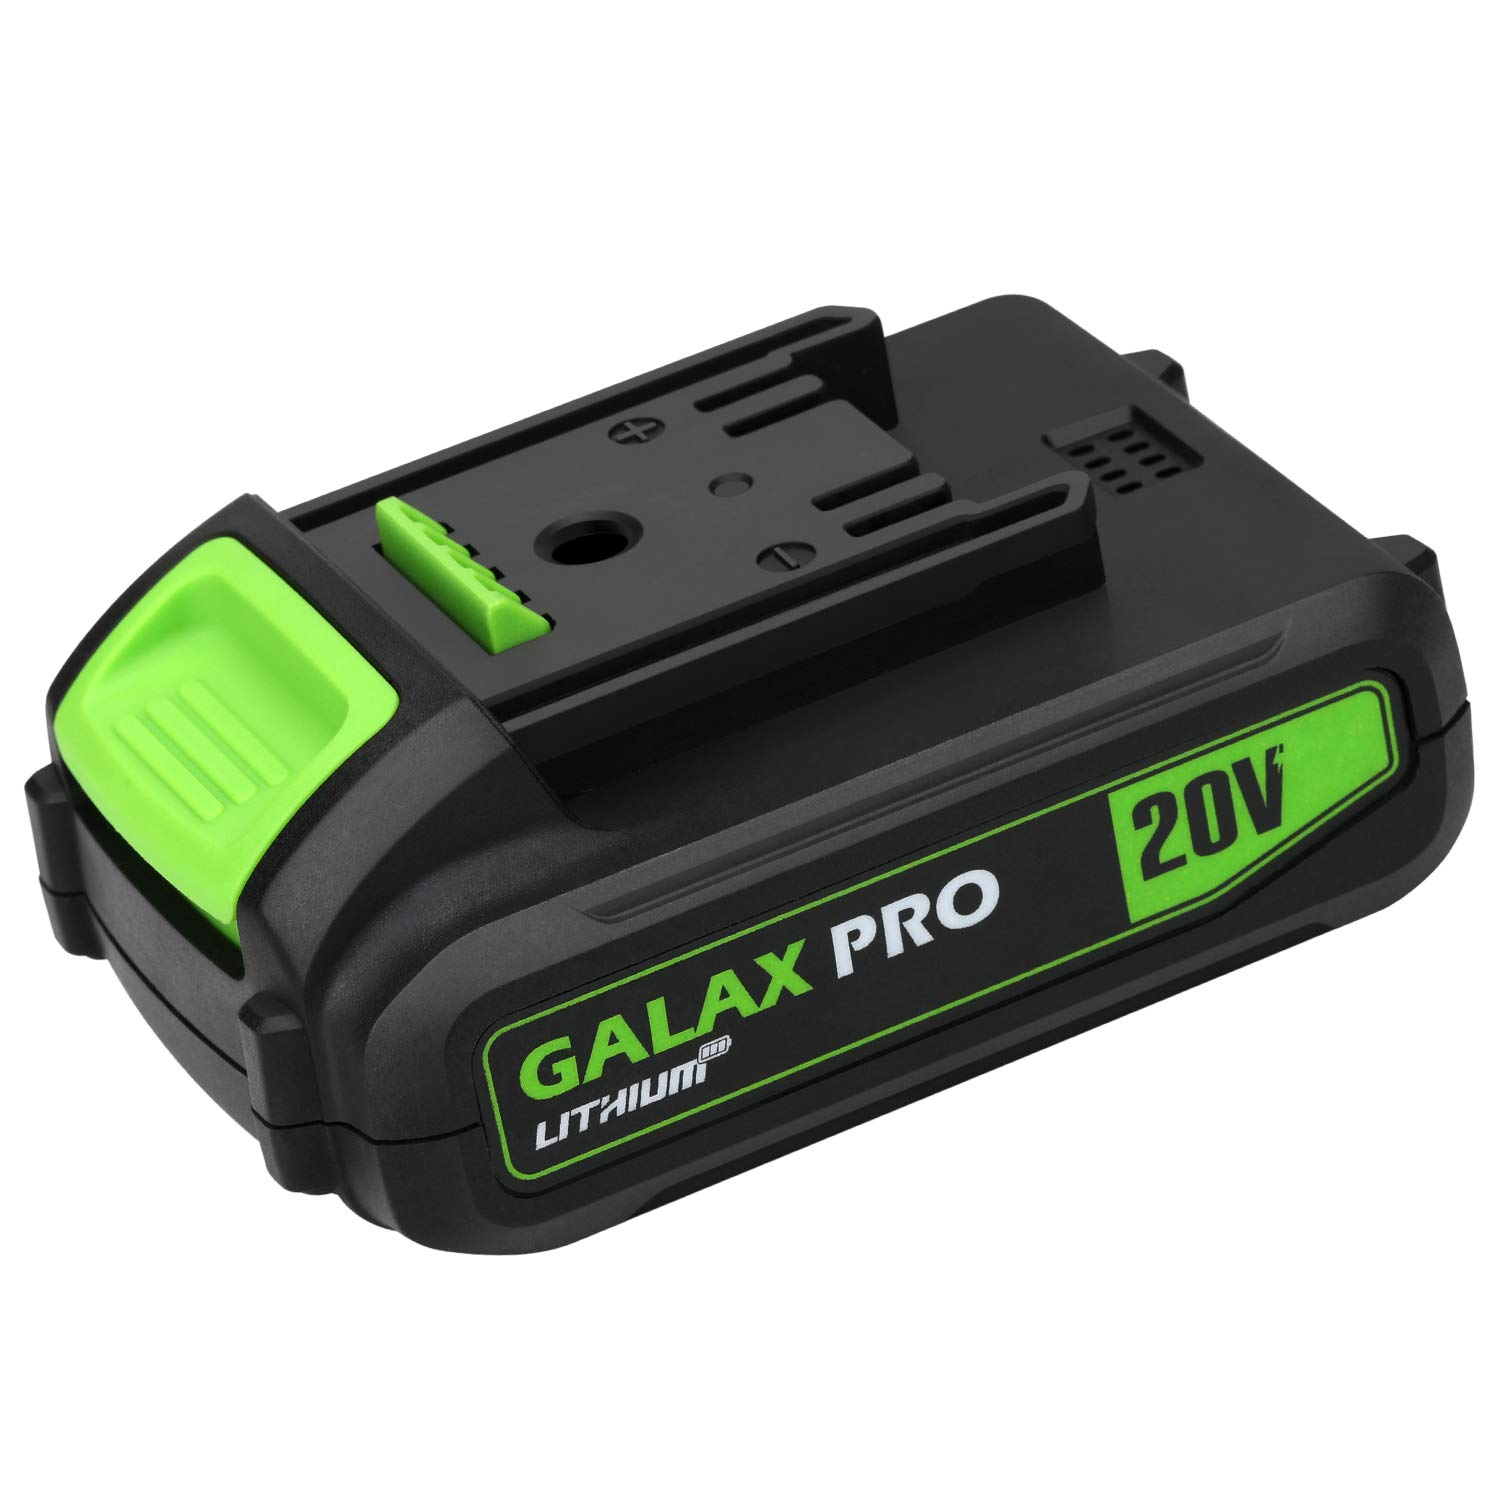 GALAX PRO DC-20V 1.3Ah Lithium Ion Battery Pack, Replacement Battery for GALAX PRO Cordless Drill & Power Tools